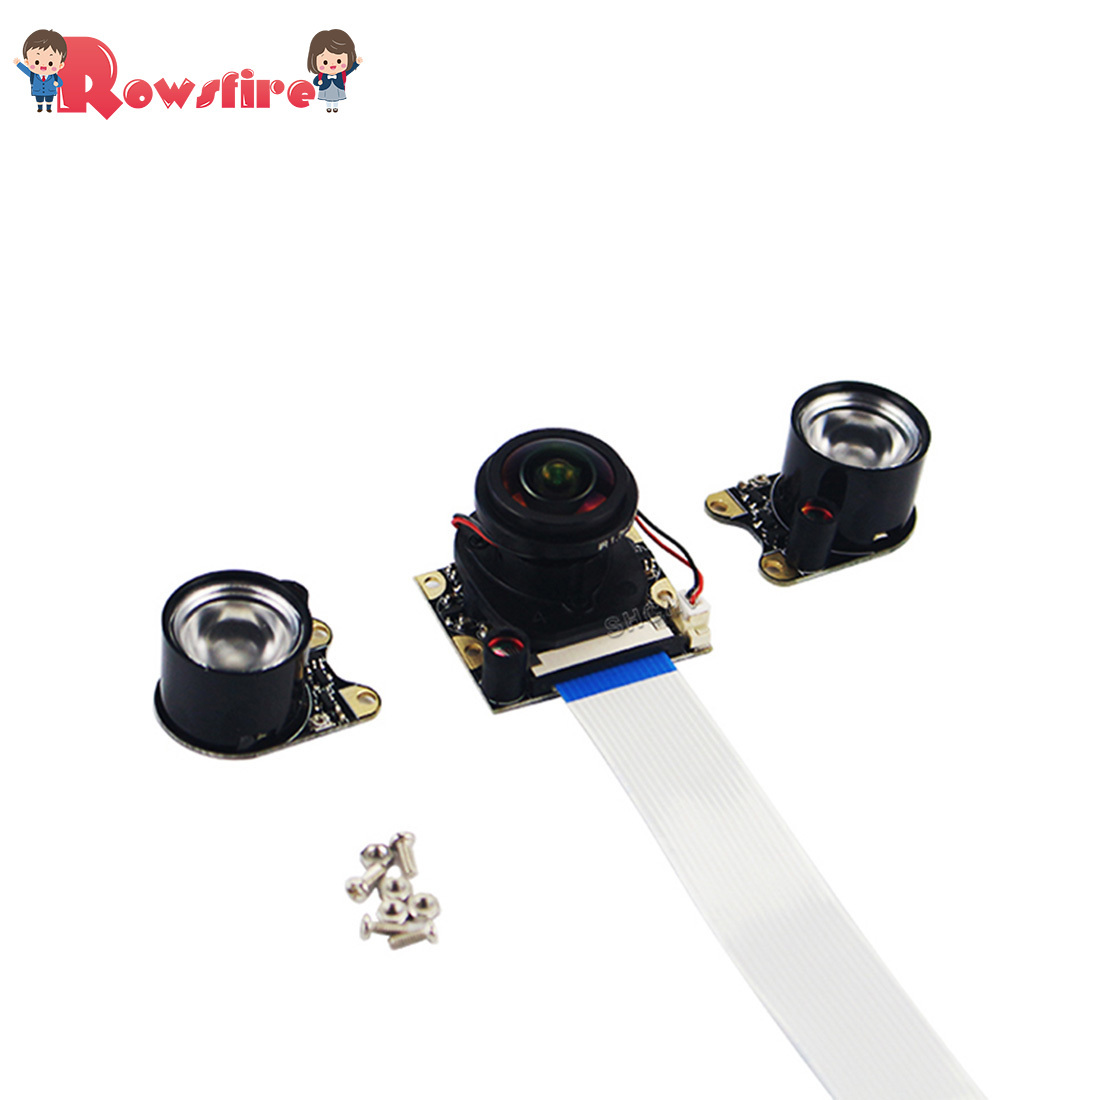 5MP 175 Degree Fish-Eye Wide Angle Camera IR-CUT Auto Switch Day And Night Vision For Raspberry Pi 3B+/3B/2B